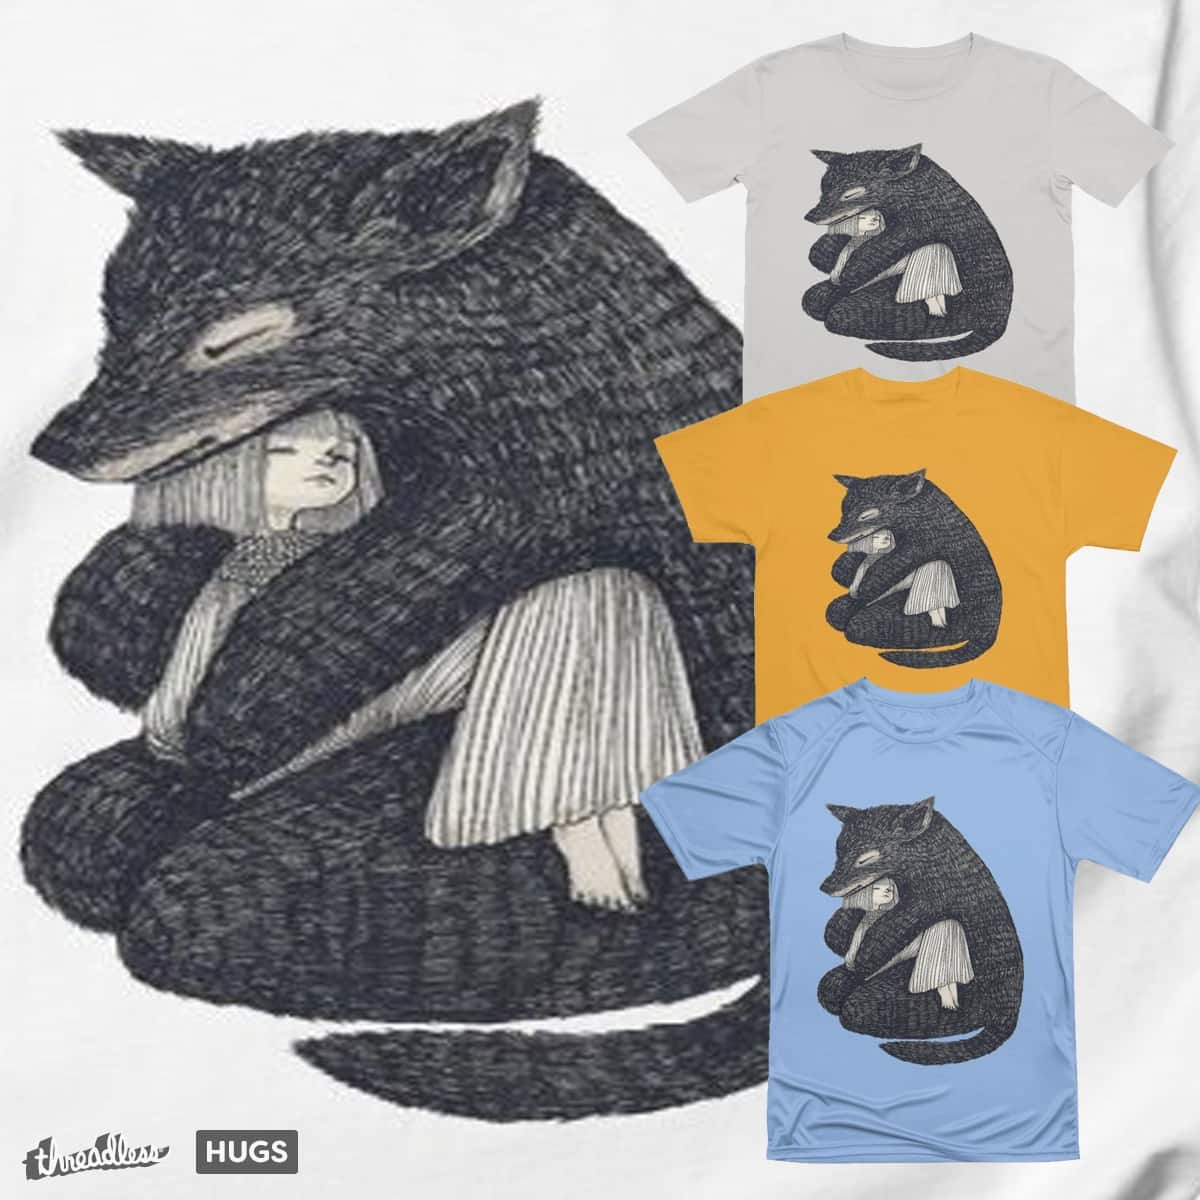 hug me, if you are not afraid that I will eat you by DzmitryKemnu on Threadless